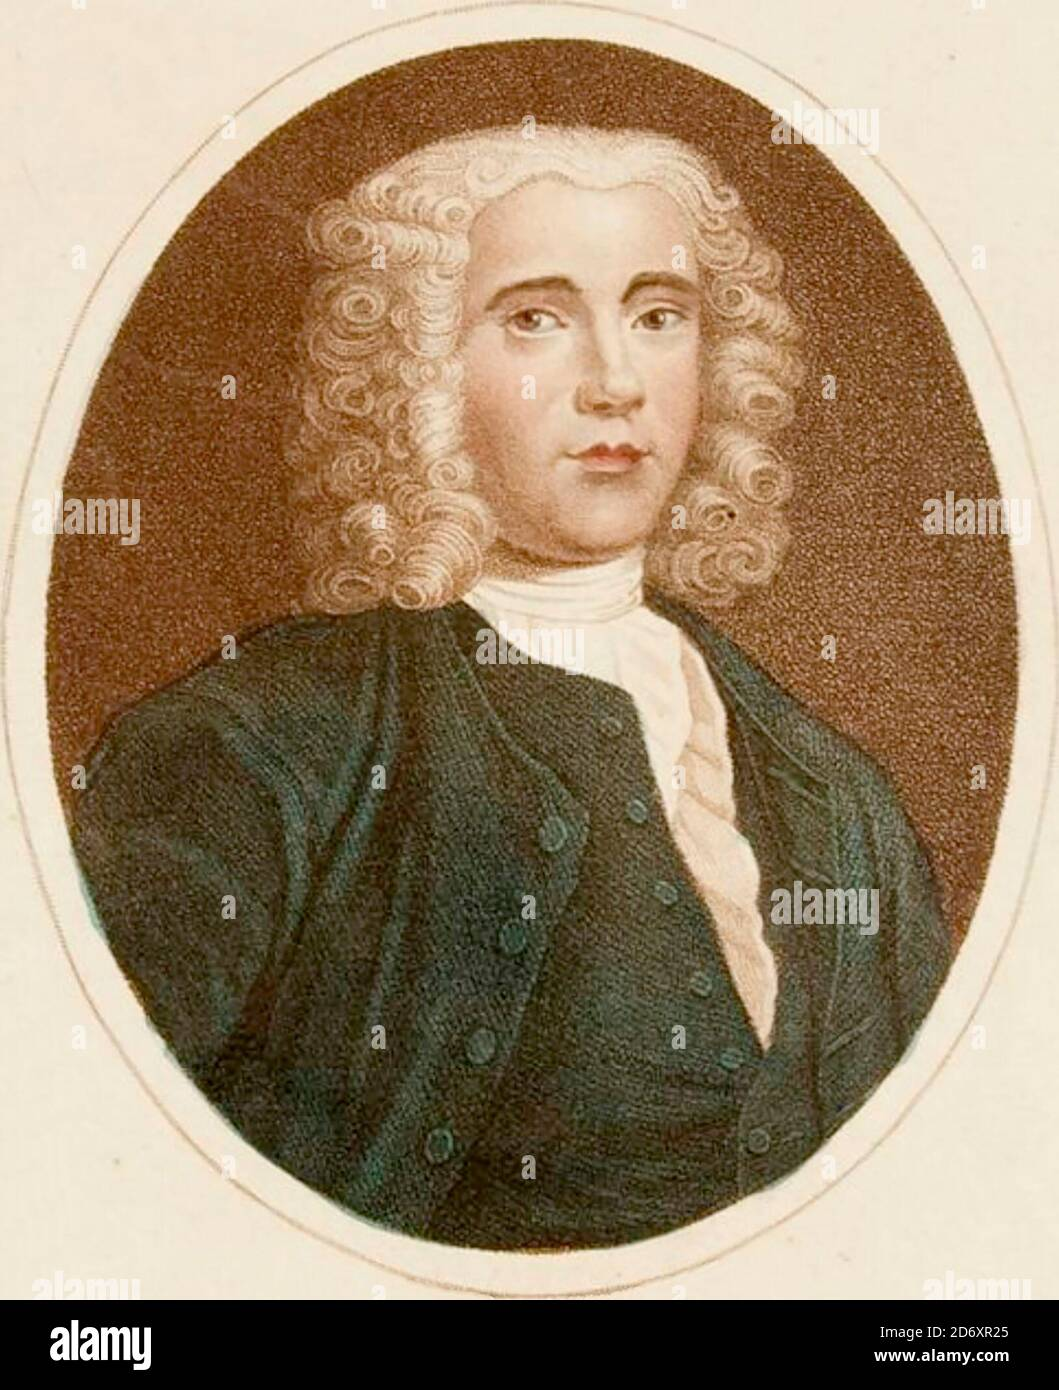 Benjamin Martin (baptized 1705; died 1782) was a lexicographer who compiled one of the early English dictionaries, the Lingua Britannica Reformata (1749). He also was a lecturer on science and maker of scientific instruments. Copperplate engraving From the Encyclopaedia Londinensis or, Universal dictionary of arts, sciences, and literature; Volume XIV;  Edited by Wilkes, John. Published in London in 1816 Stock Photo